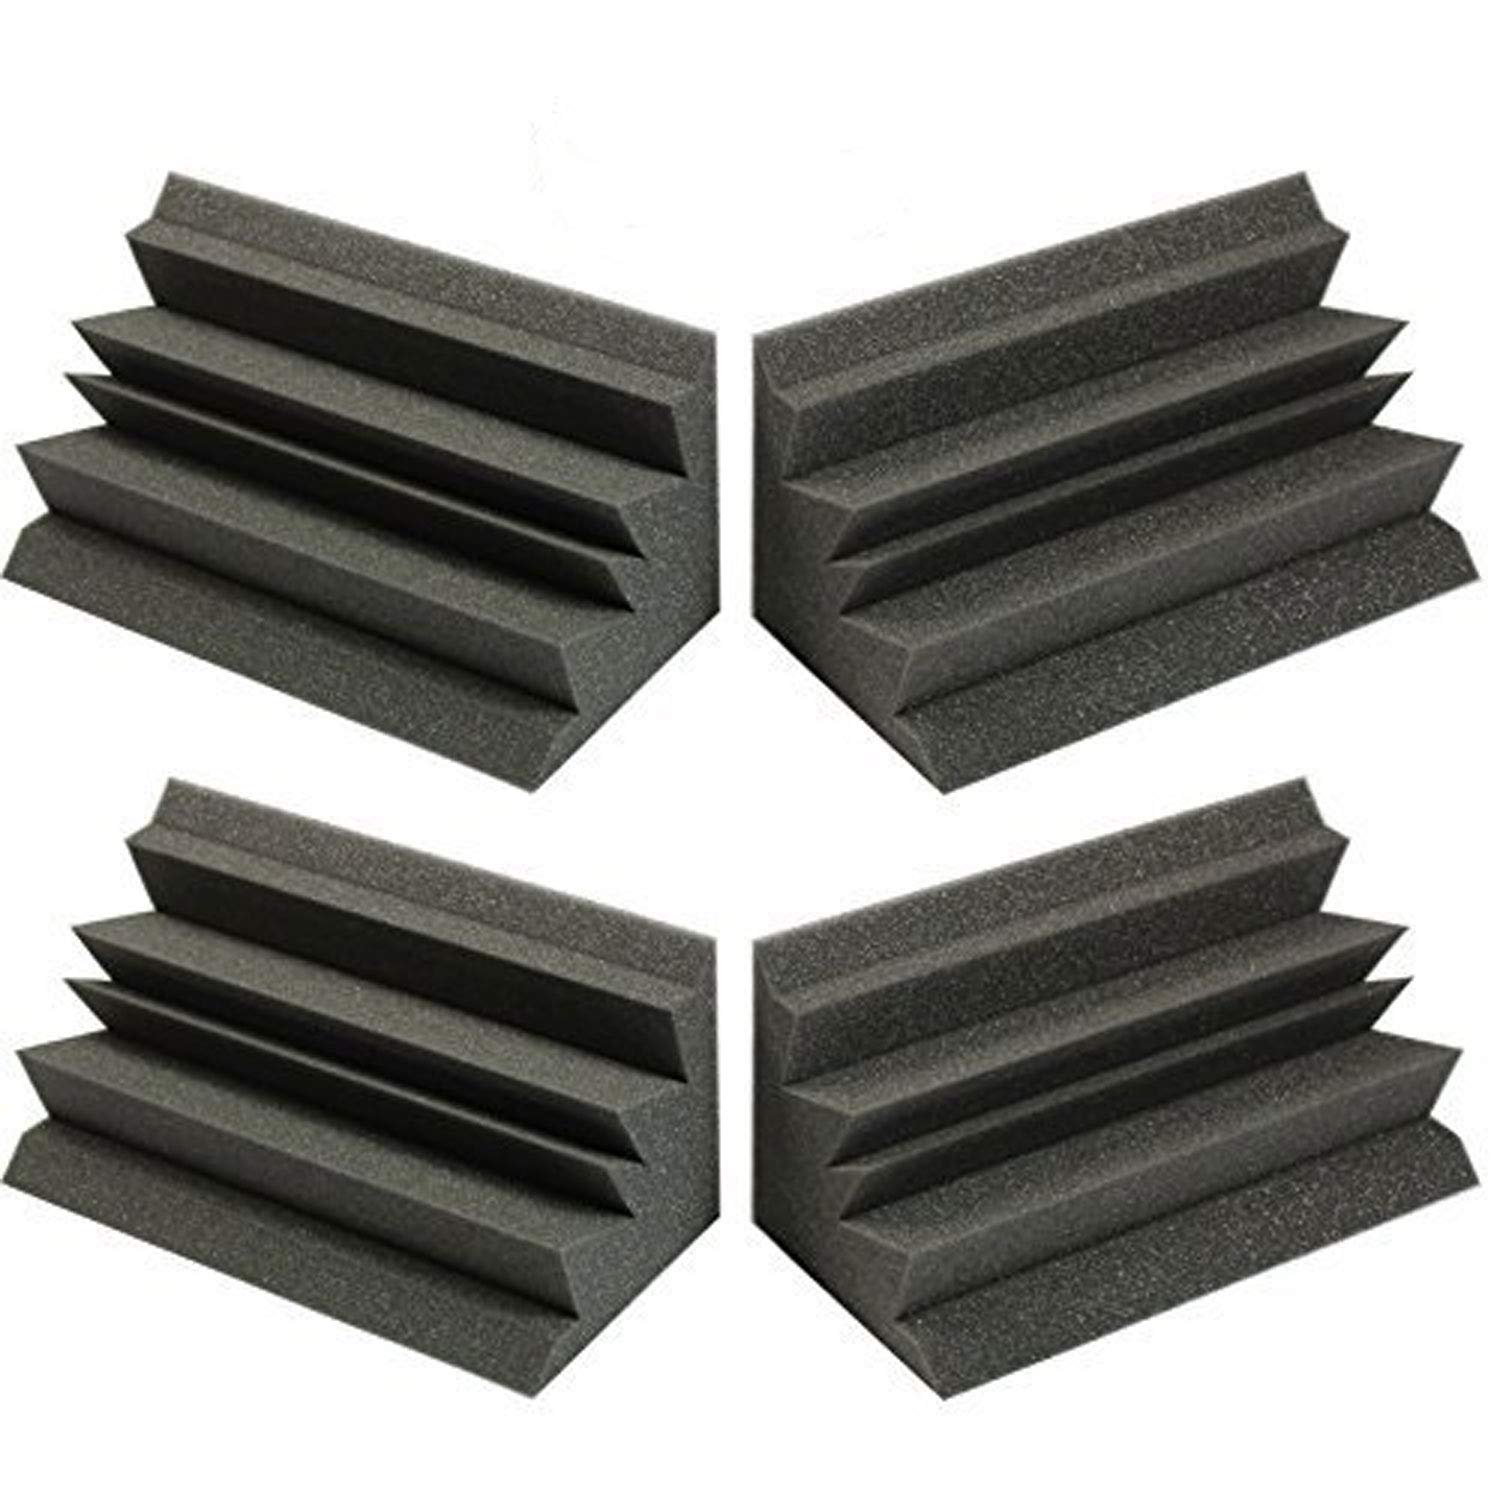 4 PACK - Acoustic Foam XL Acoustic Studio Soundproofing Corner Wall 12'' X 6'' X 6''- Made in USA (Set of 4) by Mybecca